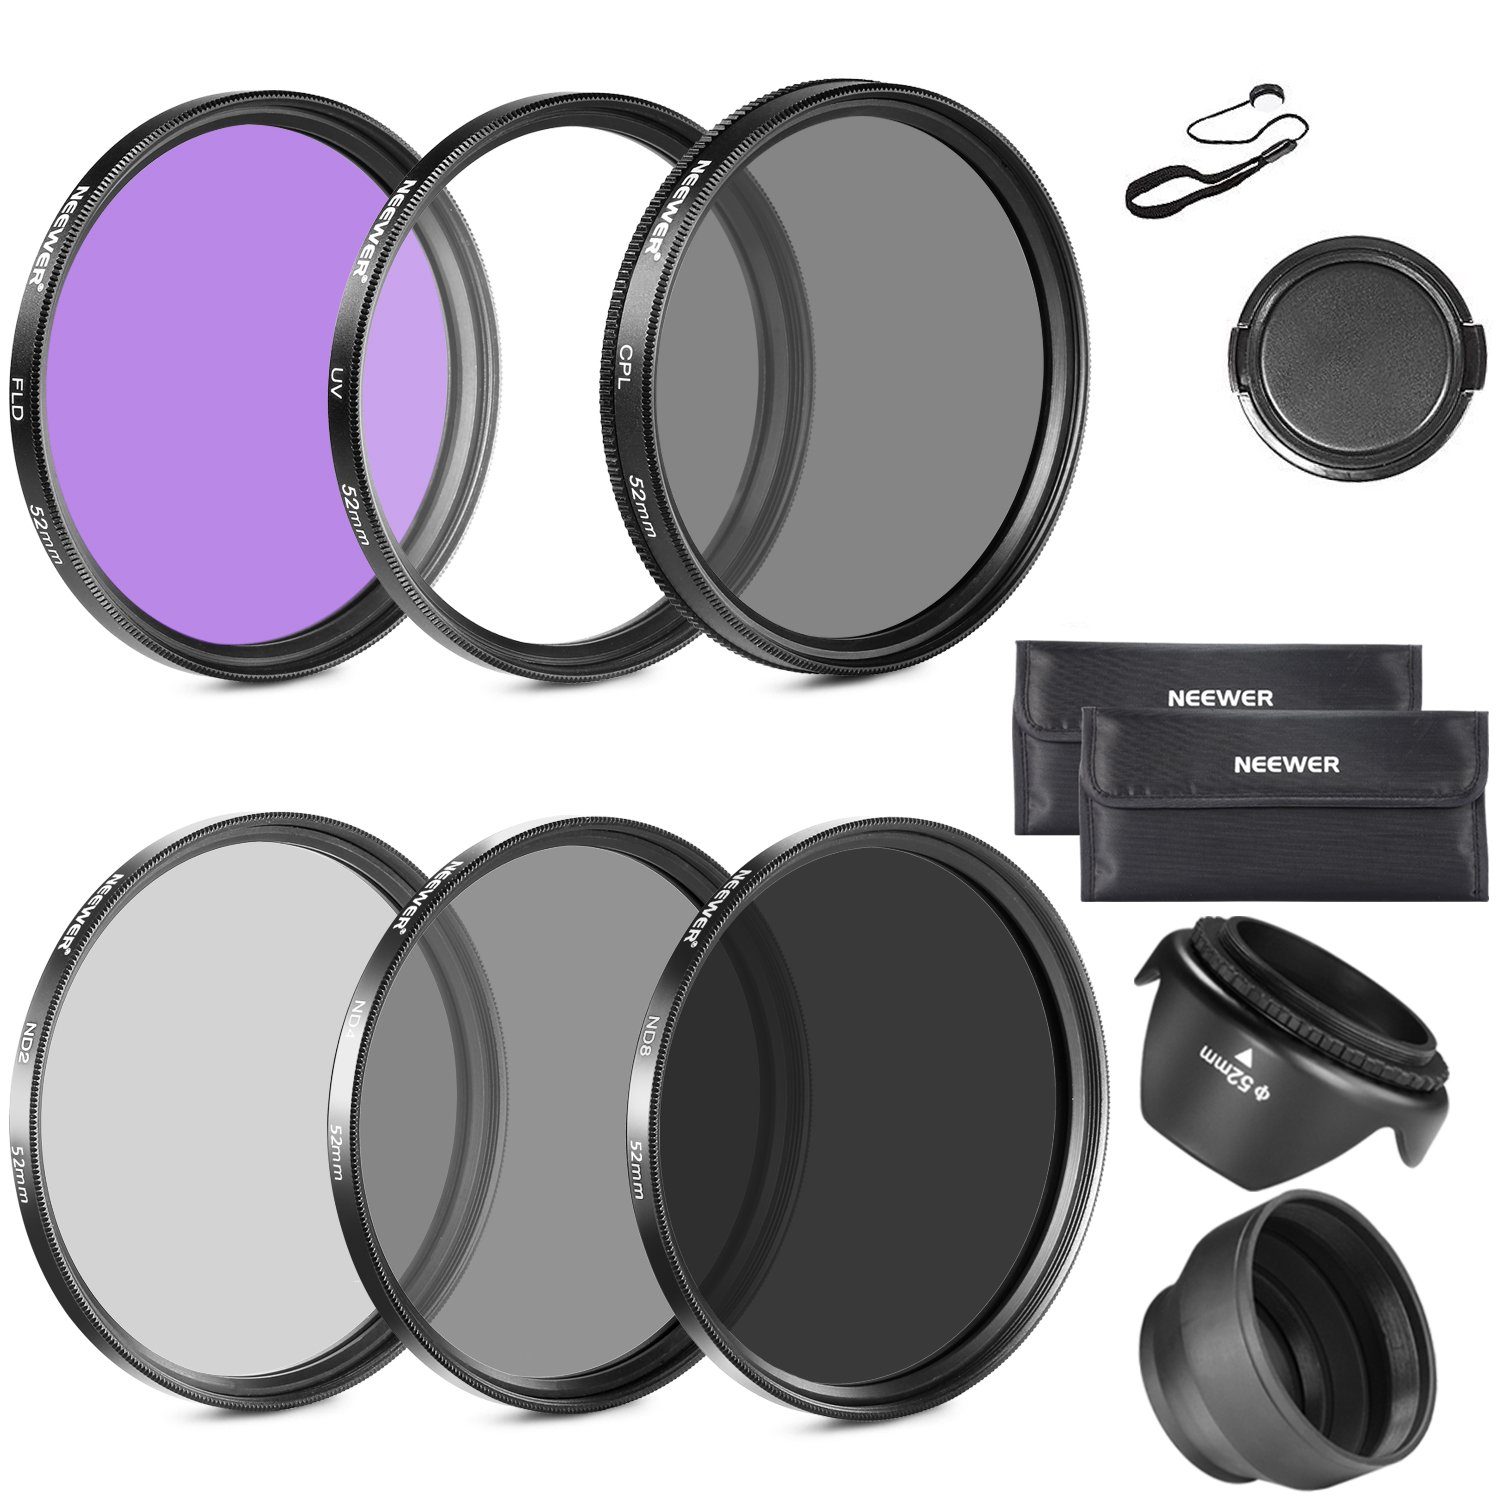 Neewer 52MM Lens Filter Kit:UV, CPL, FLD, ND2, ND4, ND8 and Lens Hood, Lens Cap for NIKON D7100 D7000 D5200 D5100 D5000 D3100 D3000 D90DSLR Cameras by Neewer